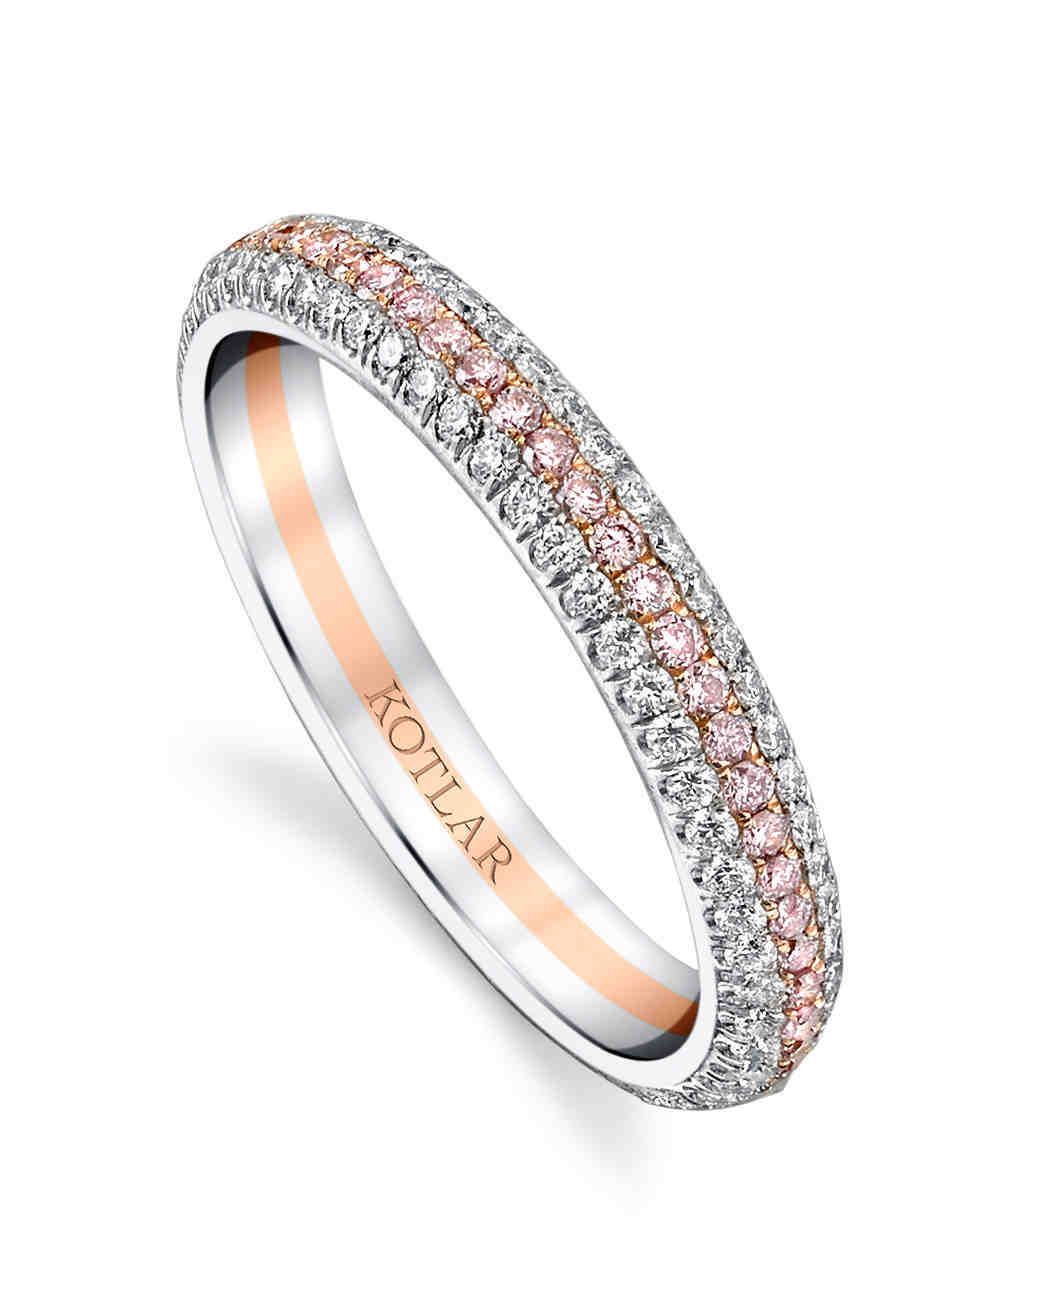 engagement for cfm rings mdc round pink engagementringsre from halo diamonds nyc jewellery ring diamond large